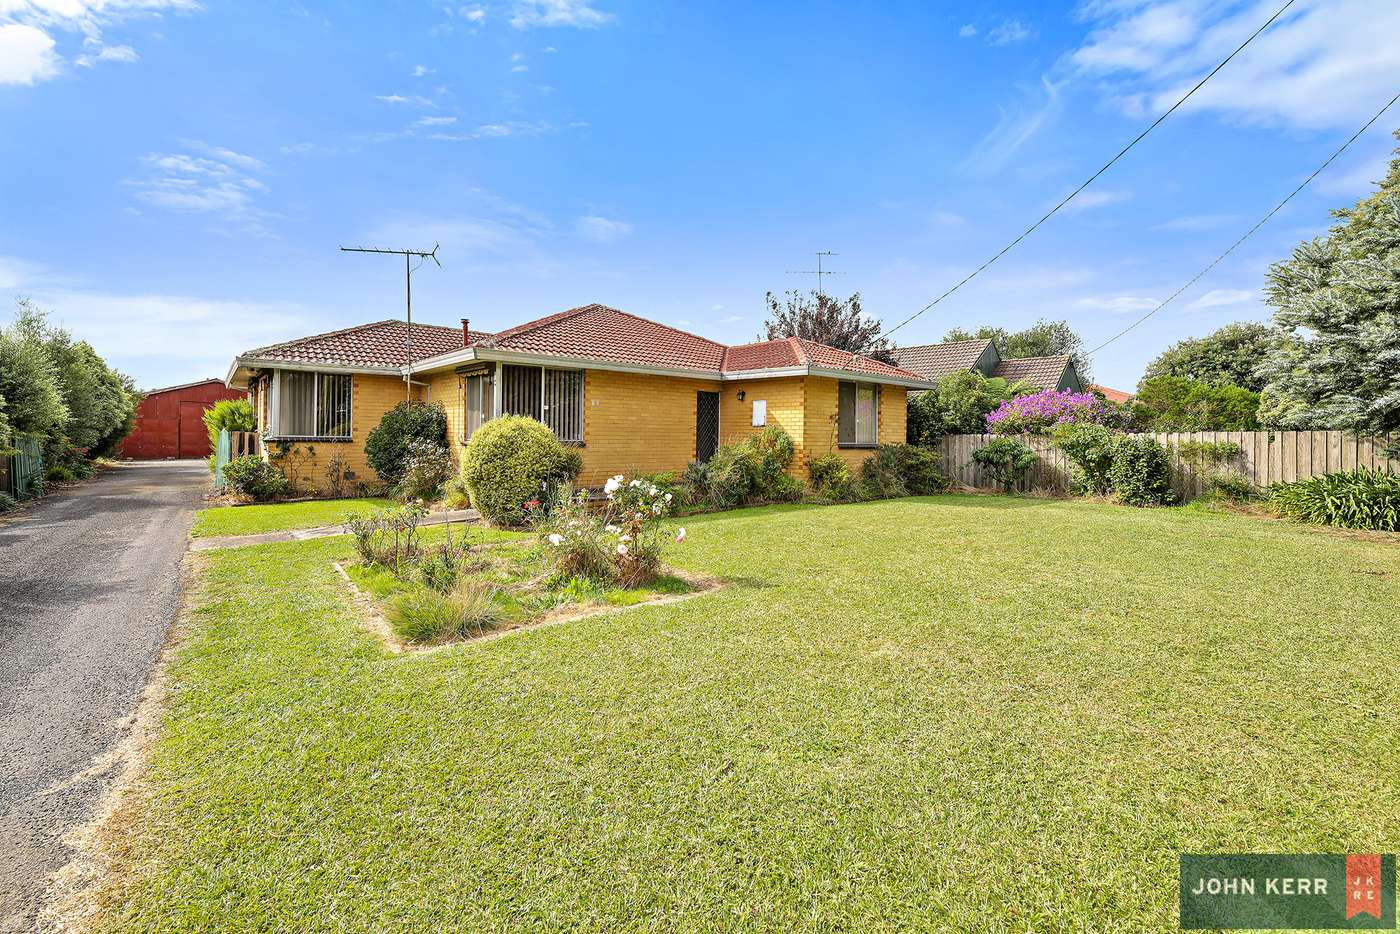 Main view of Homely house listing, 64 Contour Road, Trafalgar VIC 3824